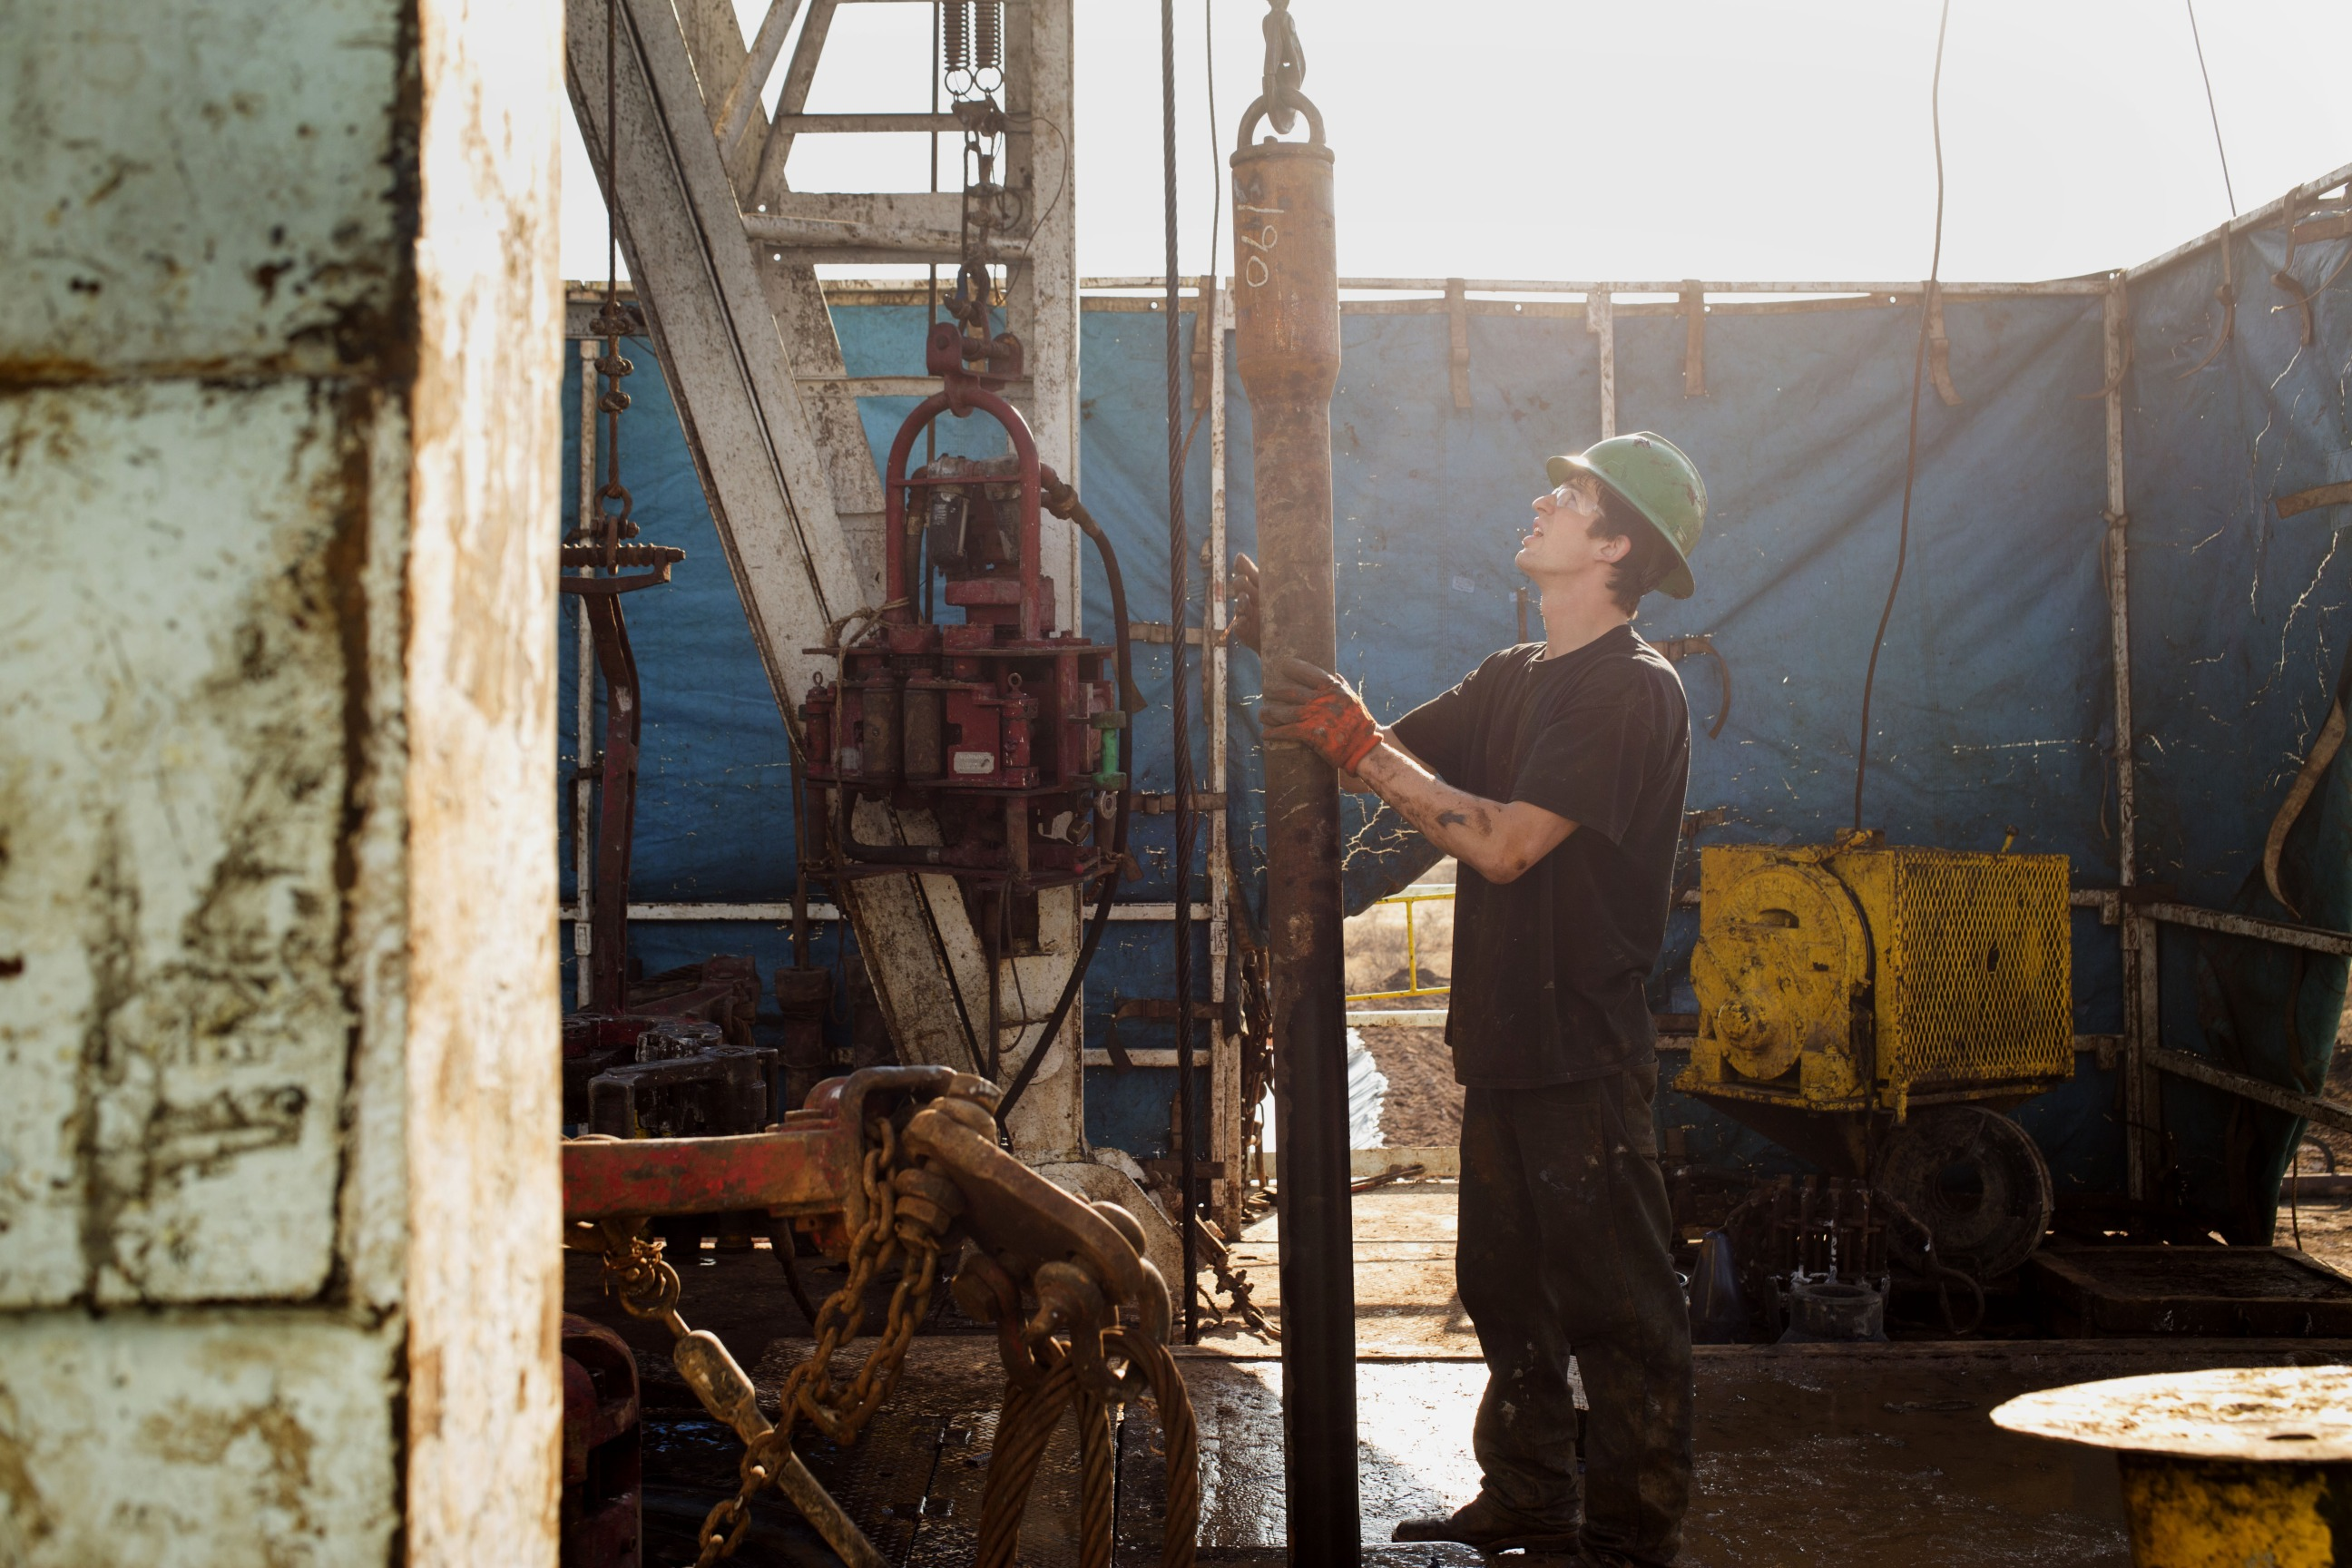 A worker checks the drilling rig before attaching it to the turntable on Endeavor Energy Resources LP's Big Dog Drilling Rig 22 in the Permian basin outside of Midland, Texas, U.S., on Friday, Dec. 12, 2014.  Photographer: Brittany Sowacke/Bloomberg